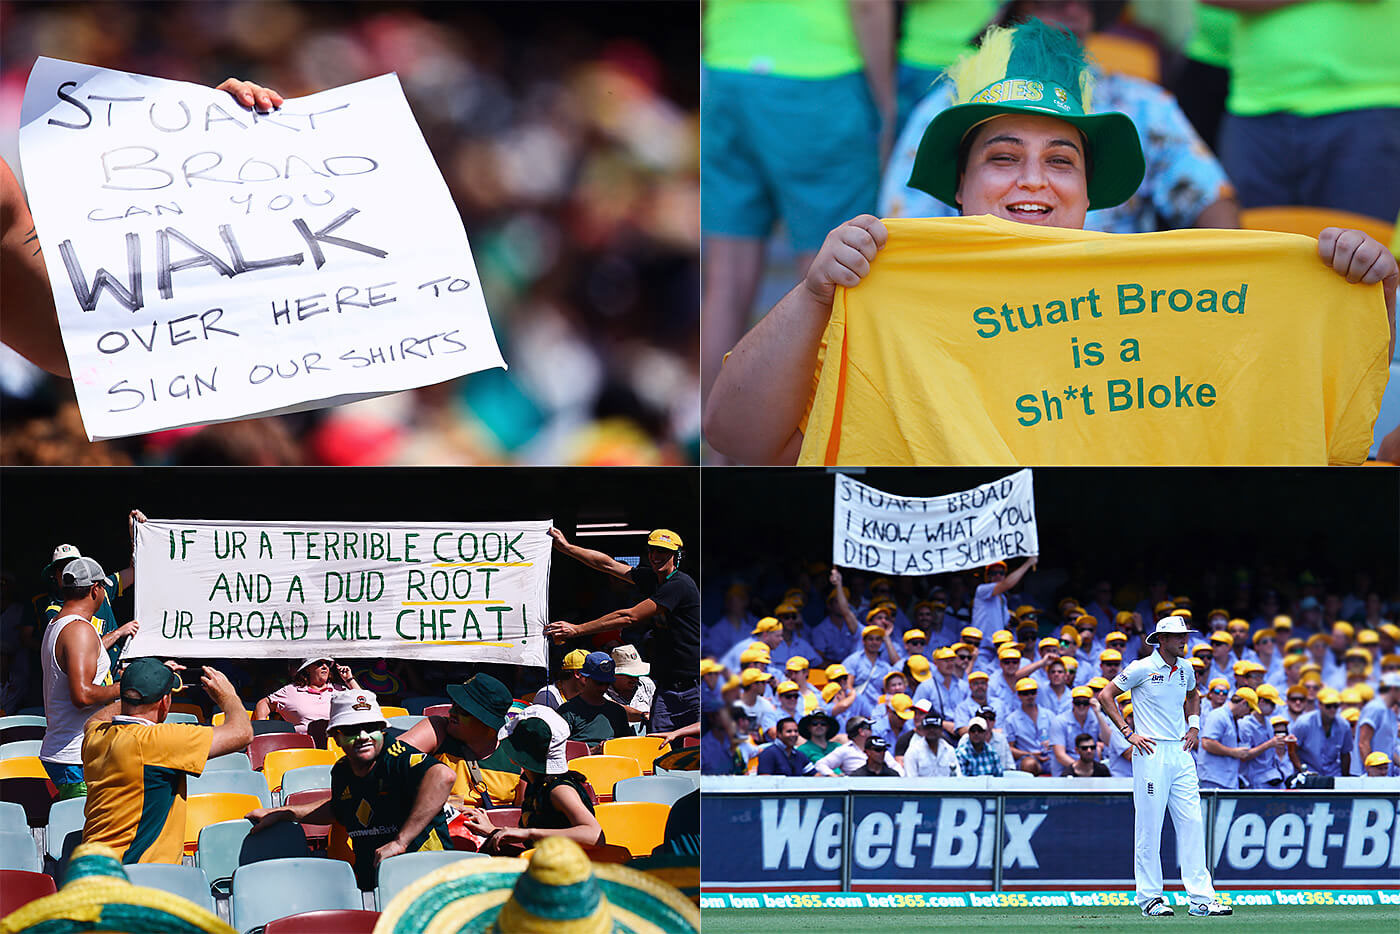 In the 2013-14 Ashes, Australian crowds went to lengths to make their feelings towards Broad known, fuelled in particular by his refusal to walk at Trent Bridge a few months earlier